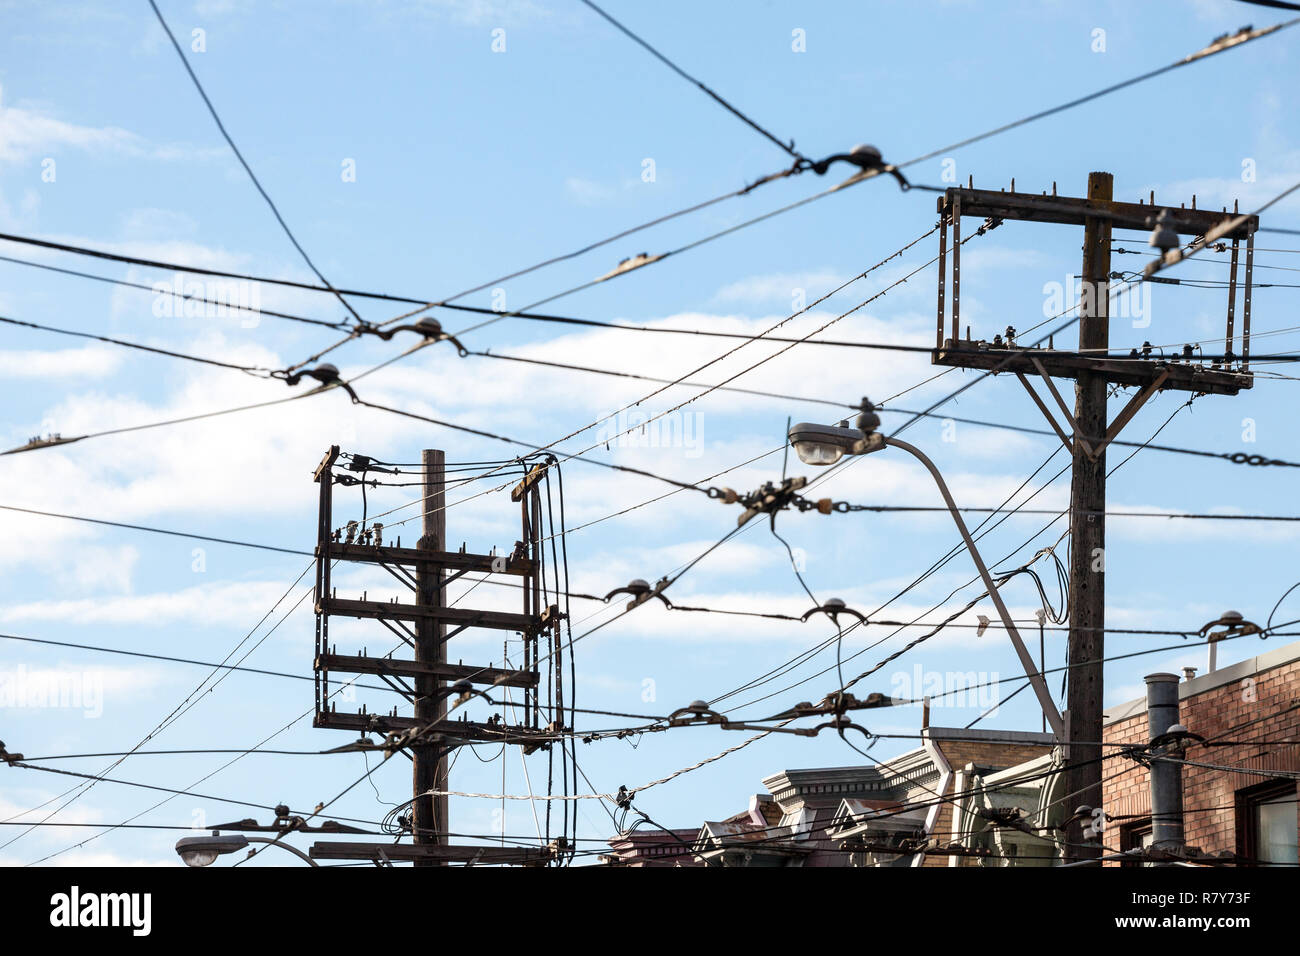 hight resolution of electric power lines on wooden poles electricity supply phone lines and streetcar cables